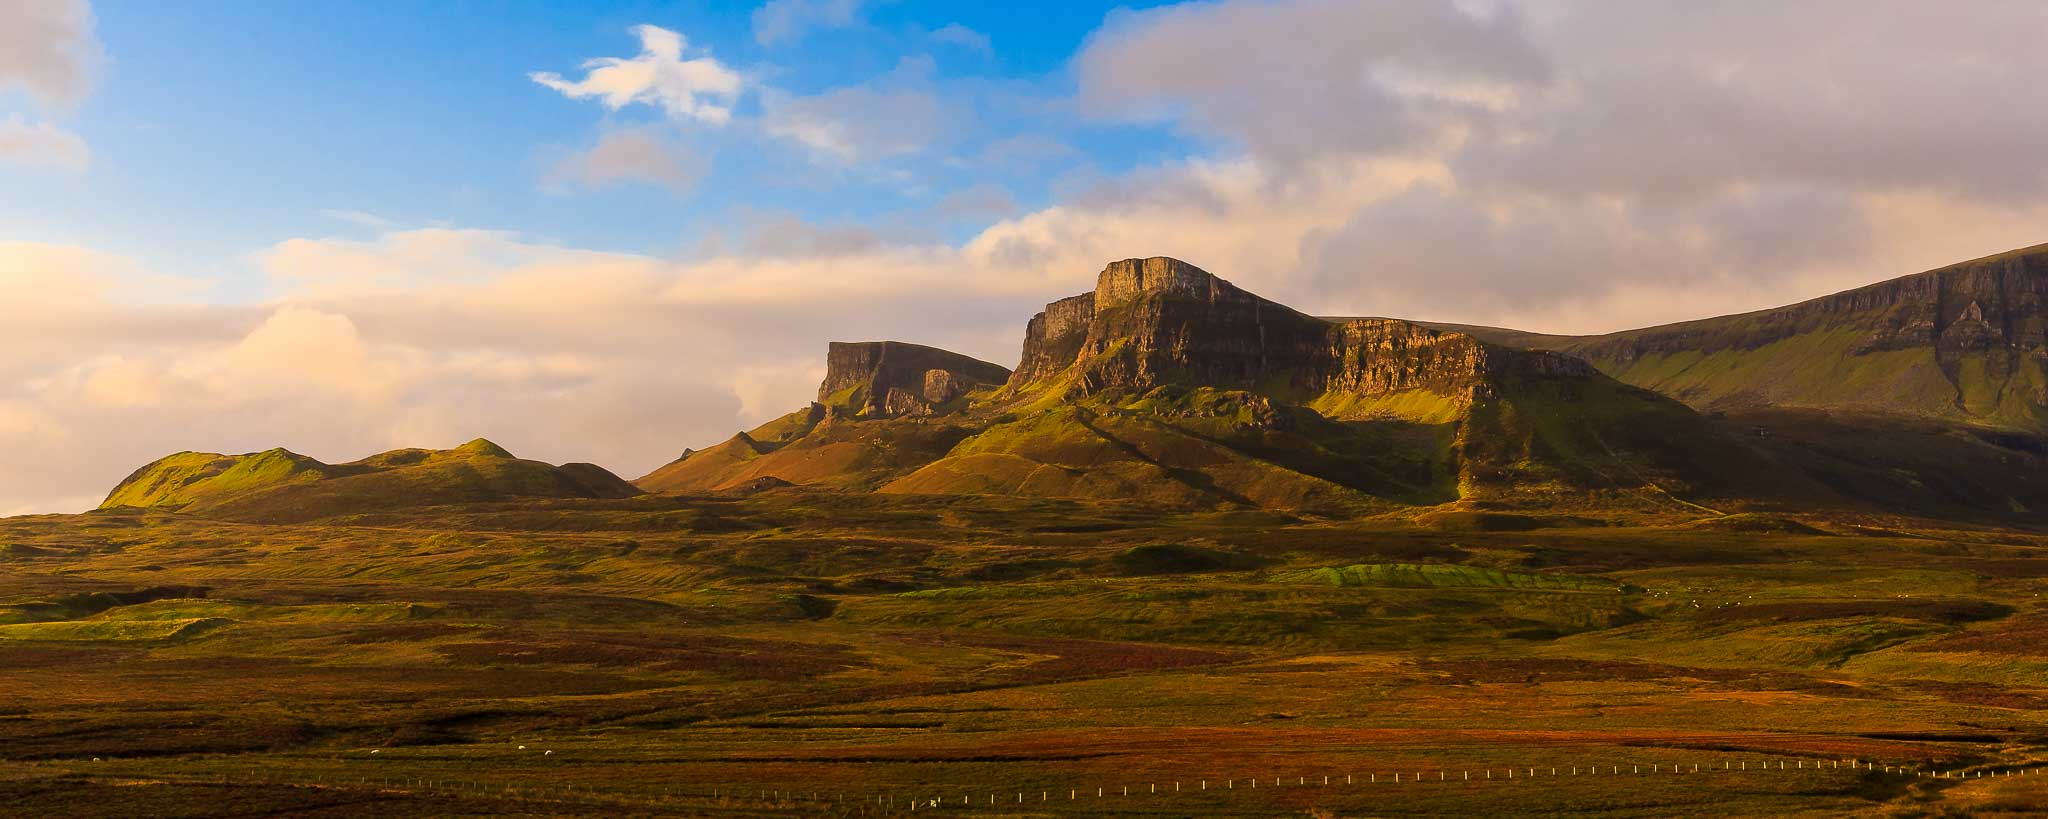 The Cabecera, Storr, Isle of Skye, Scotland